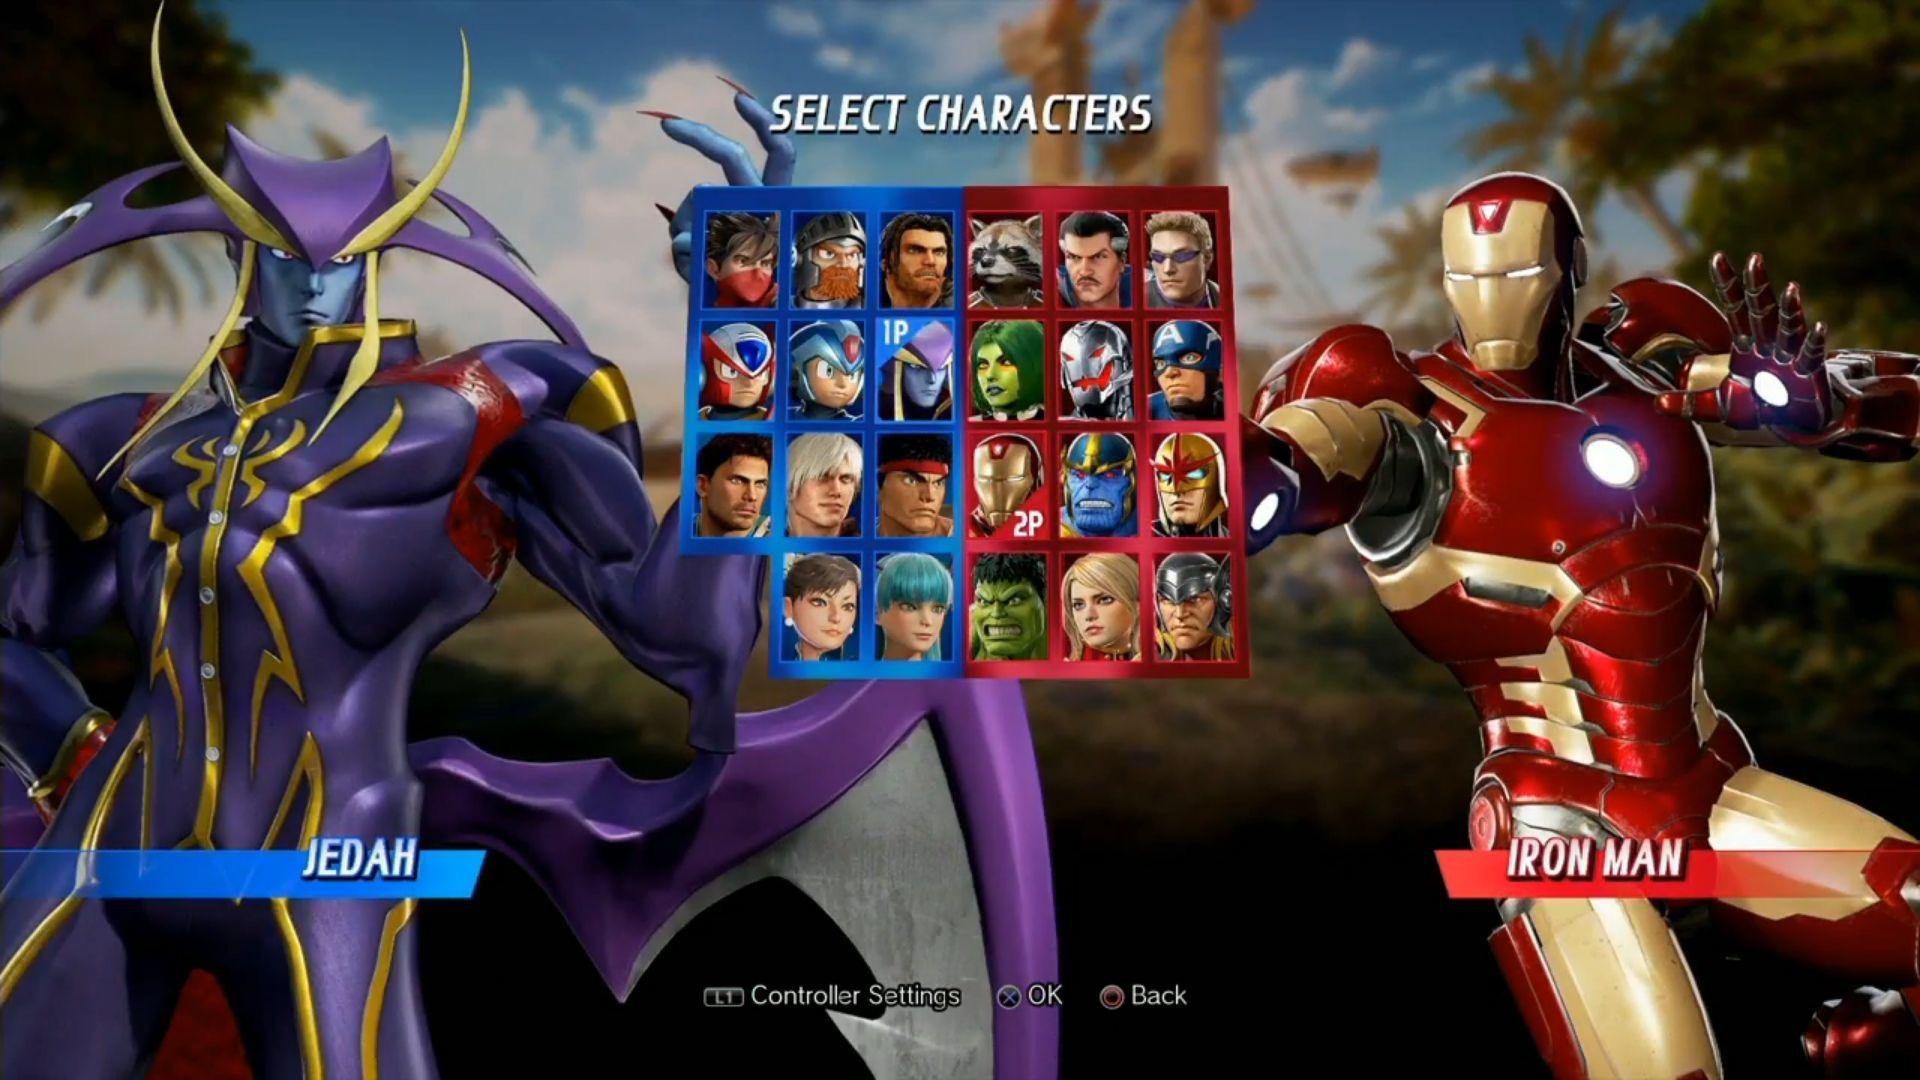 Darkstalkers' Jedah is coming to Marvel vs. Capcom Infinite